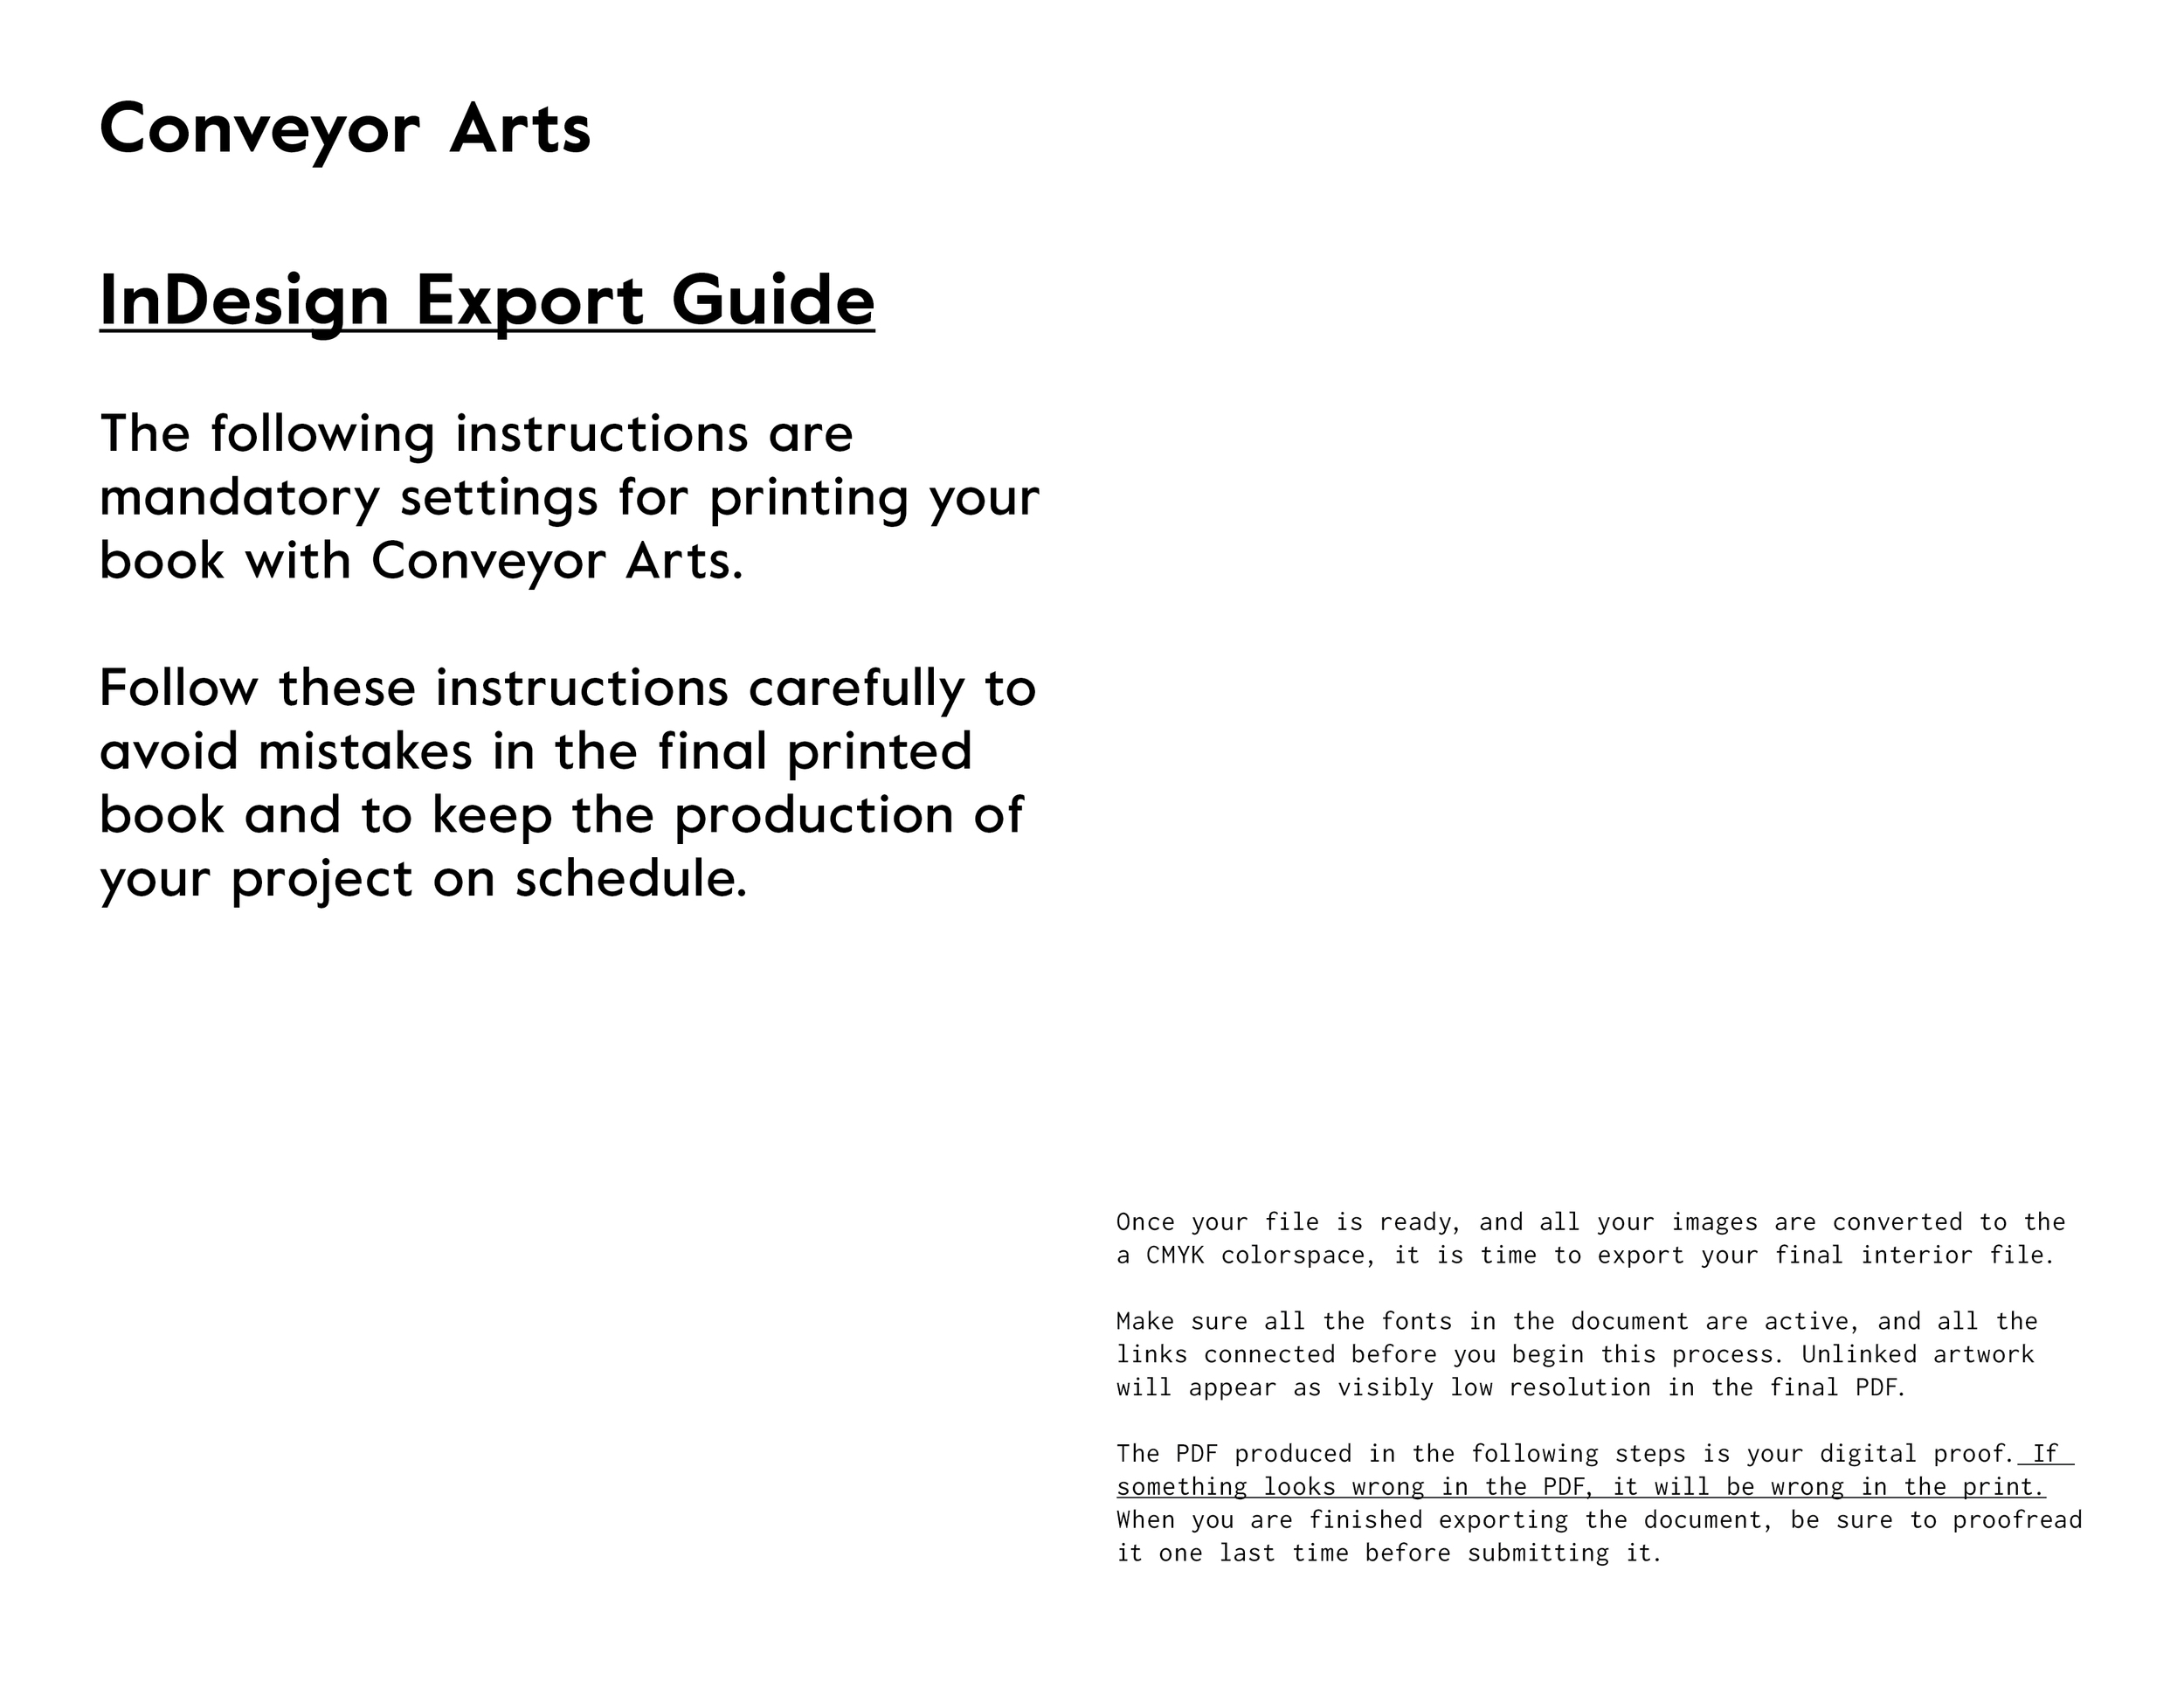 Conveyor Arts Export_Instructions8.jpg